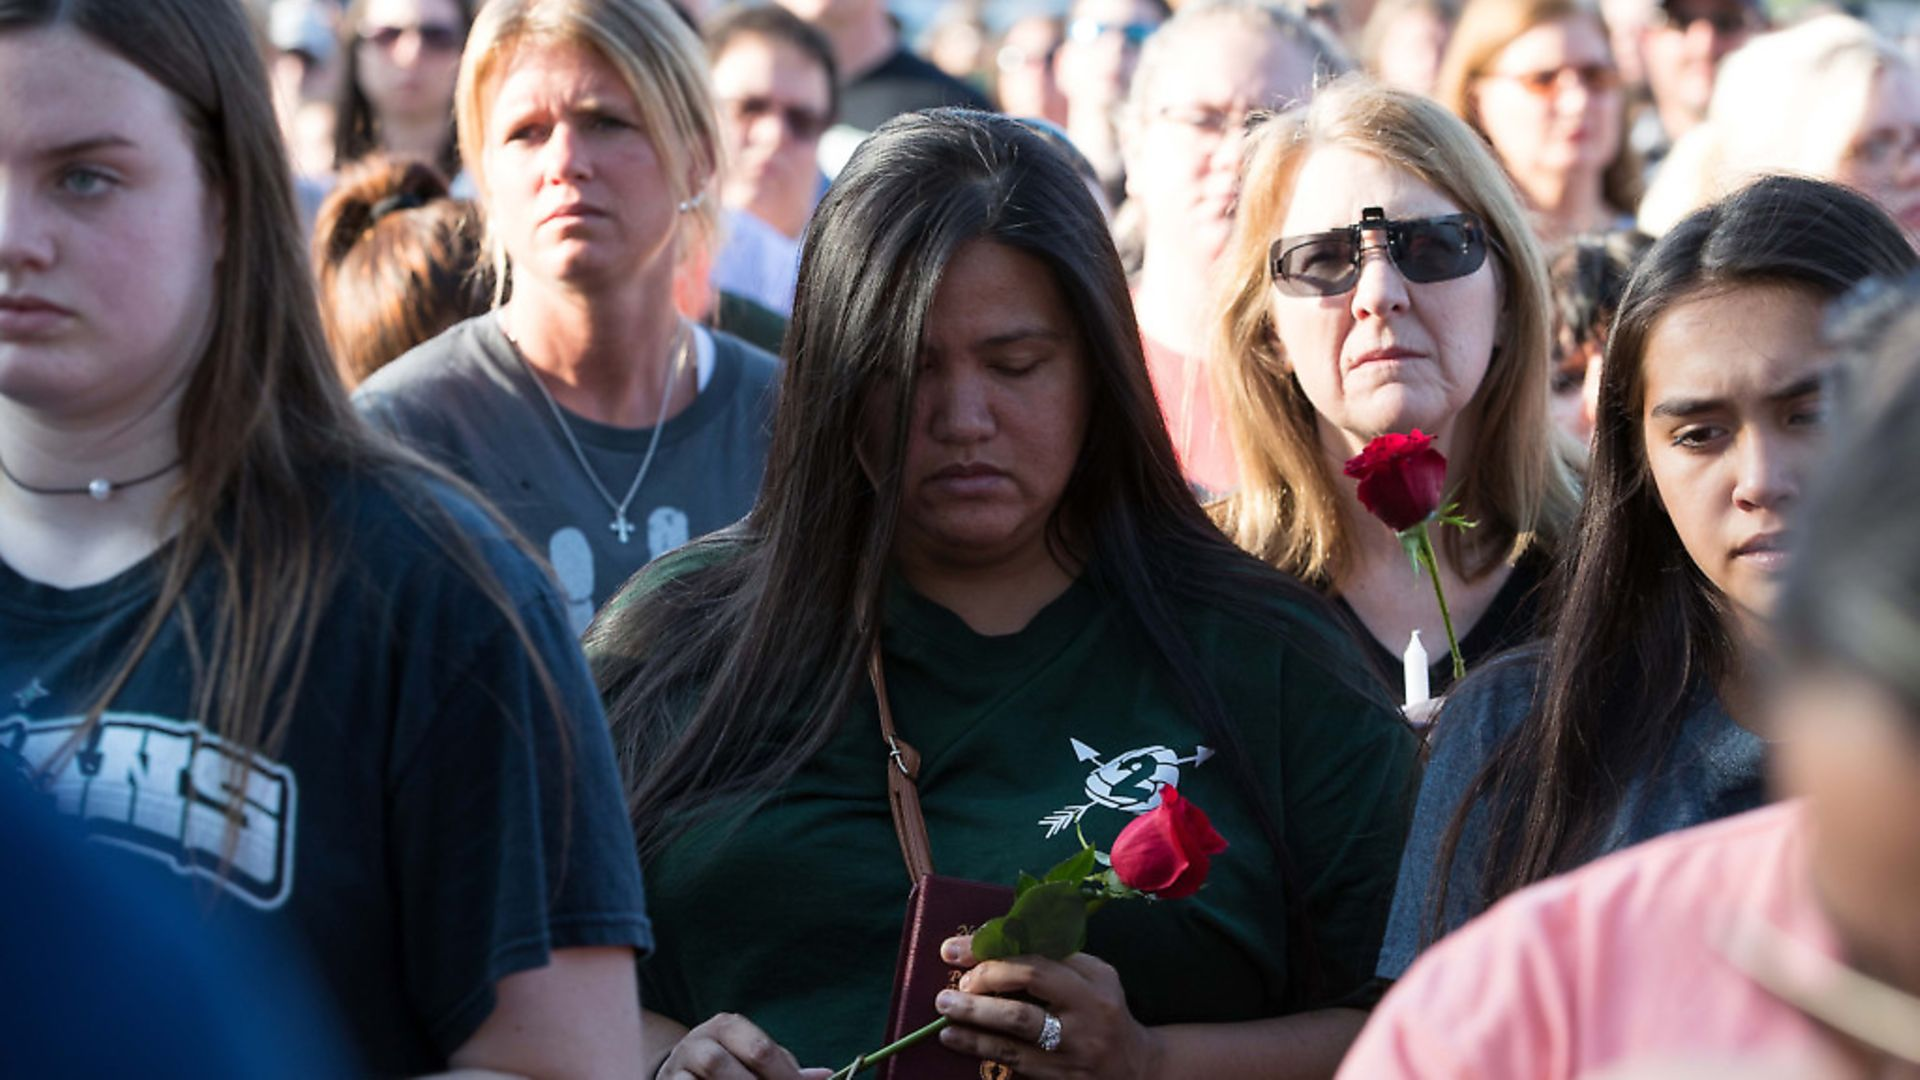 Mourners gather following the shooting that killed 10 at Santa De High School. Picture: PA - Credit: SIPA USA/PA Images